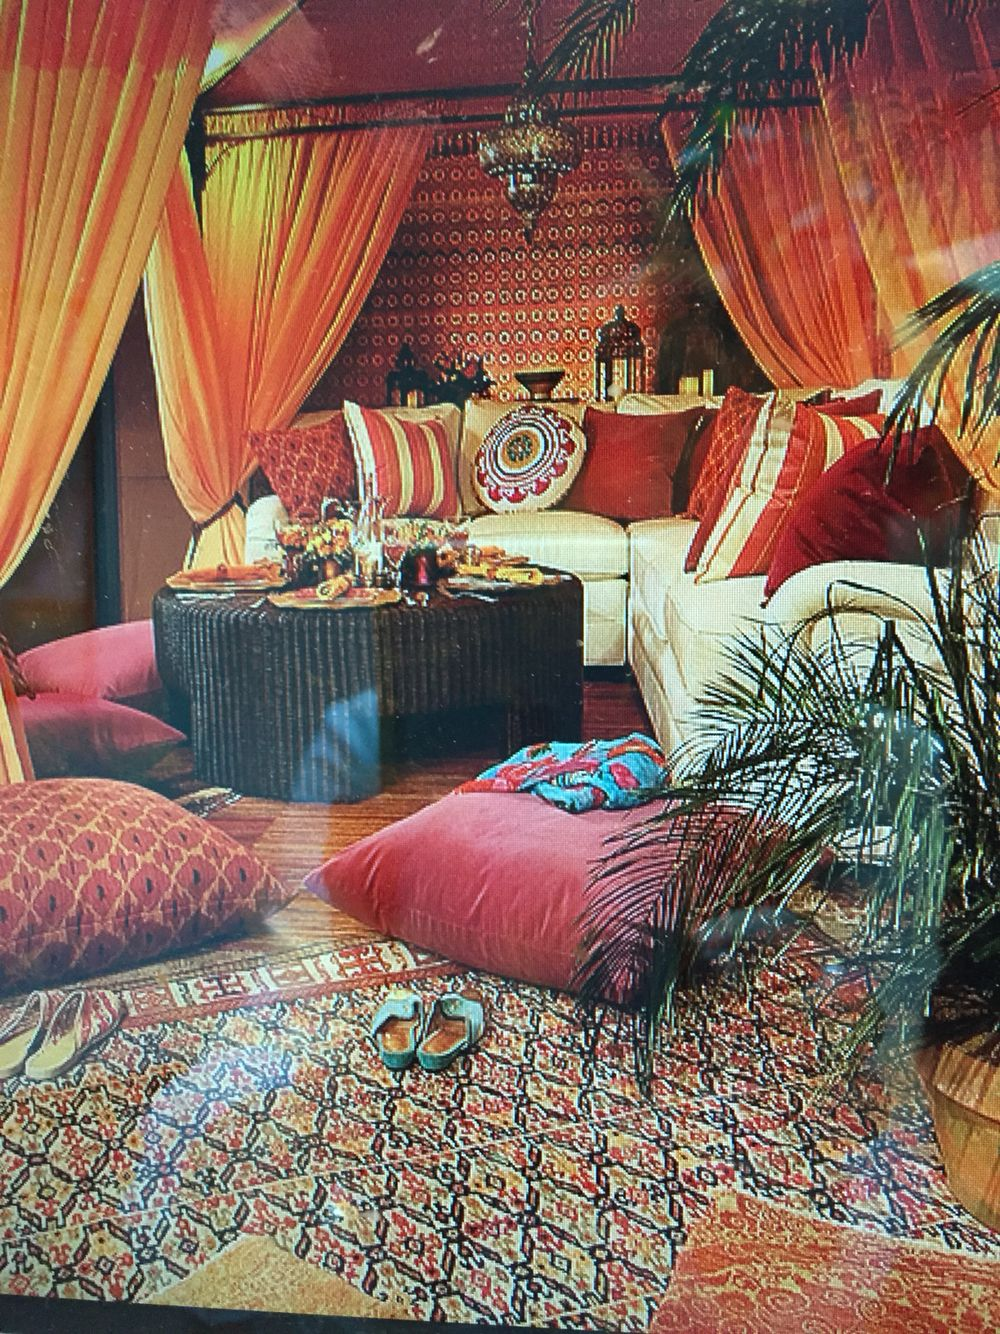 Moroccan Home Decor Ideas Part - 42: Pin By Carol Hines On She Sheds | Pinterest | Bohemian, Boho Chic Bedroom  And Canopy